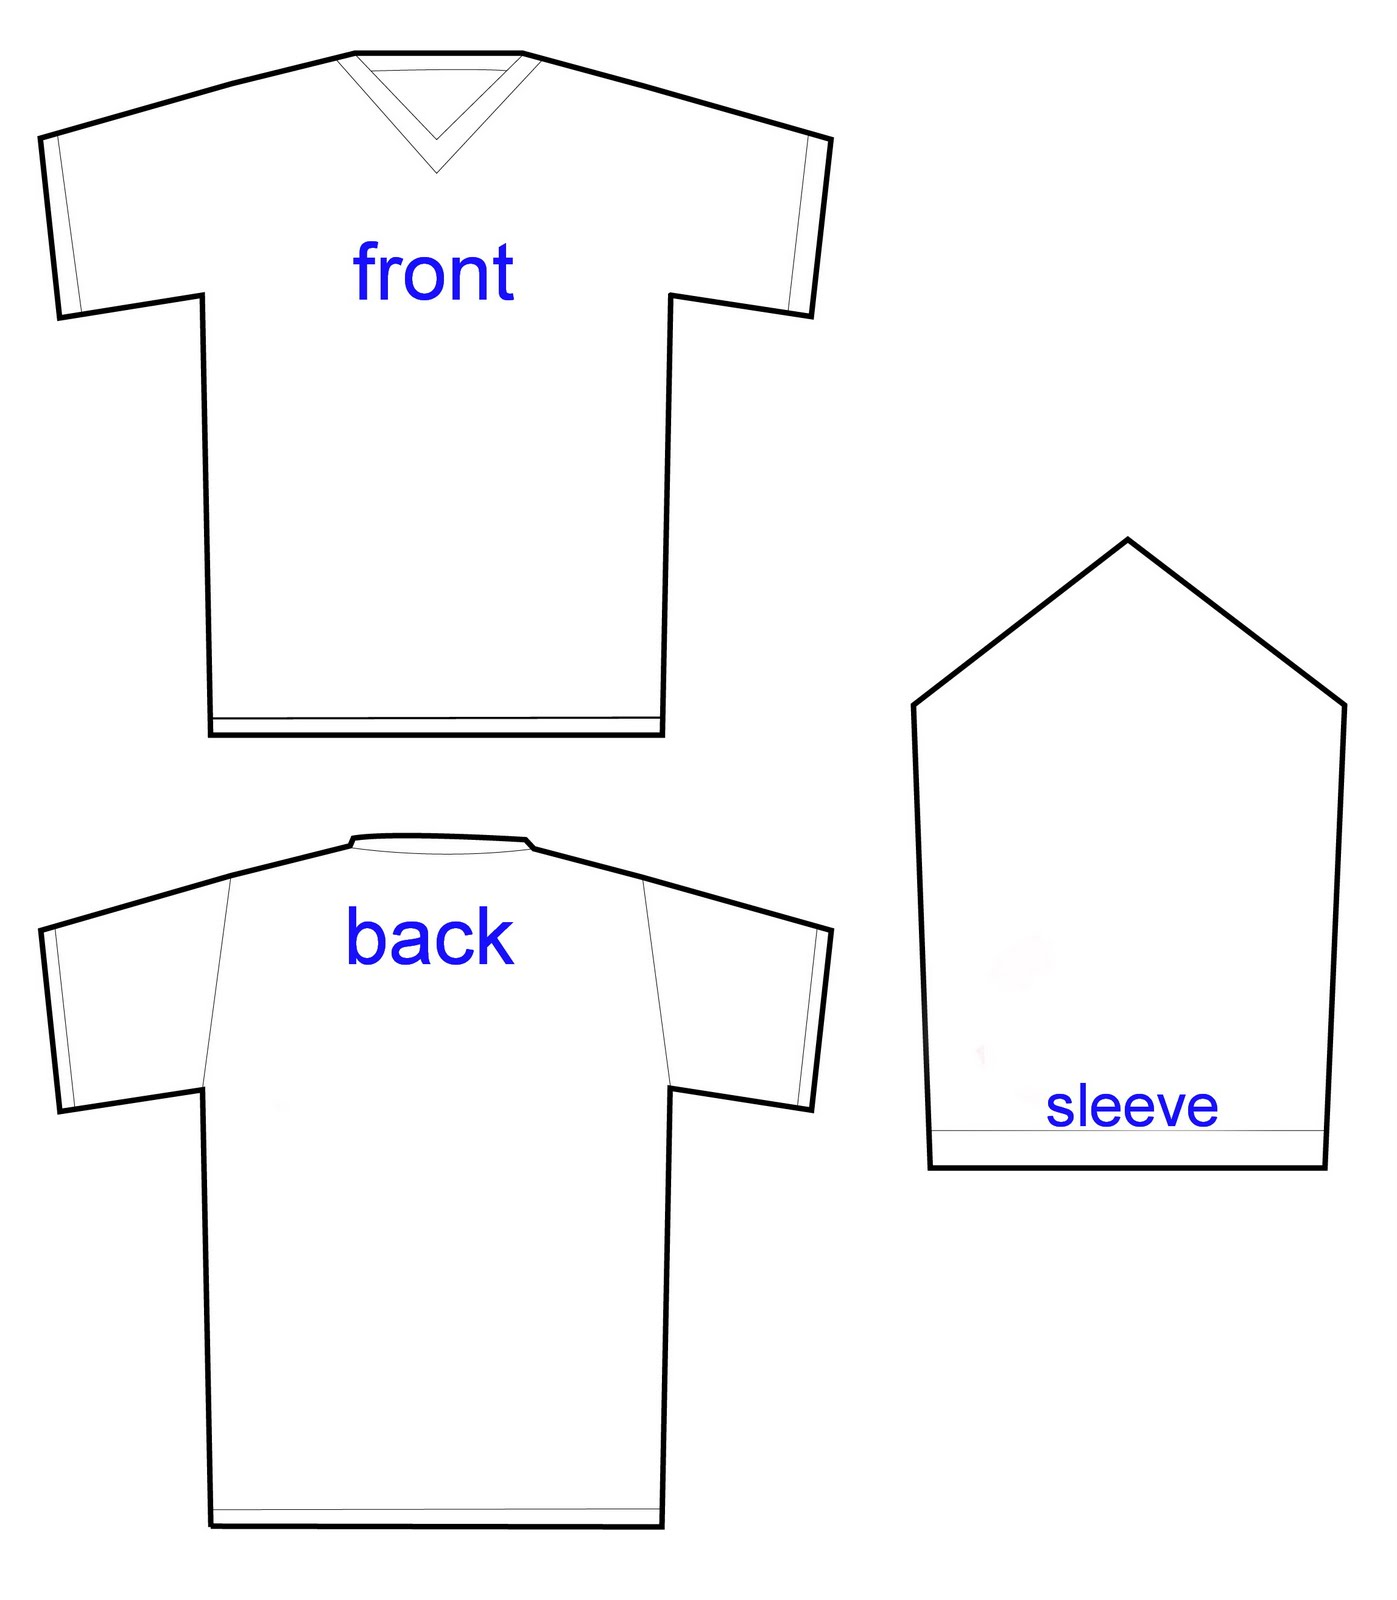 16 v t shirts designs templates images t shirt design template t shirt outline template and t. Black Bedroom Furniture Sets. Home Design Ideas